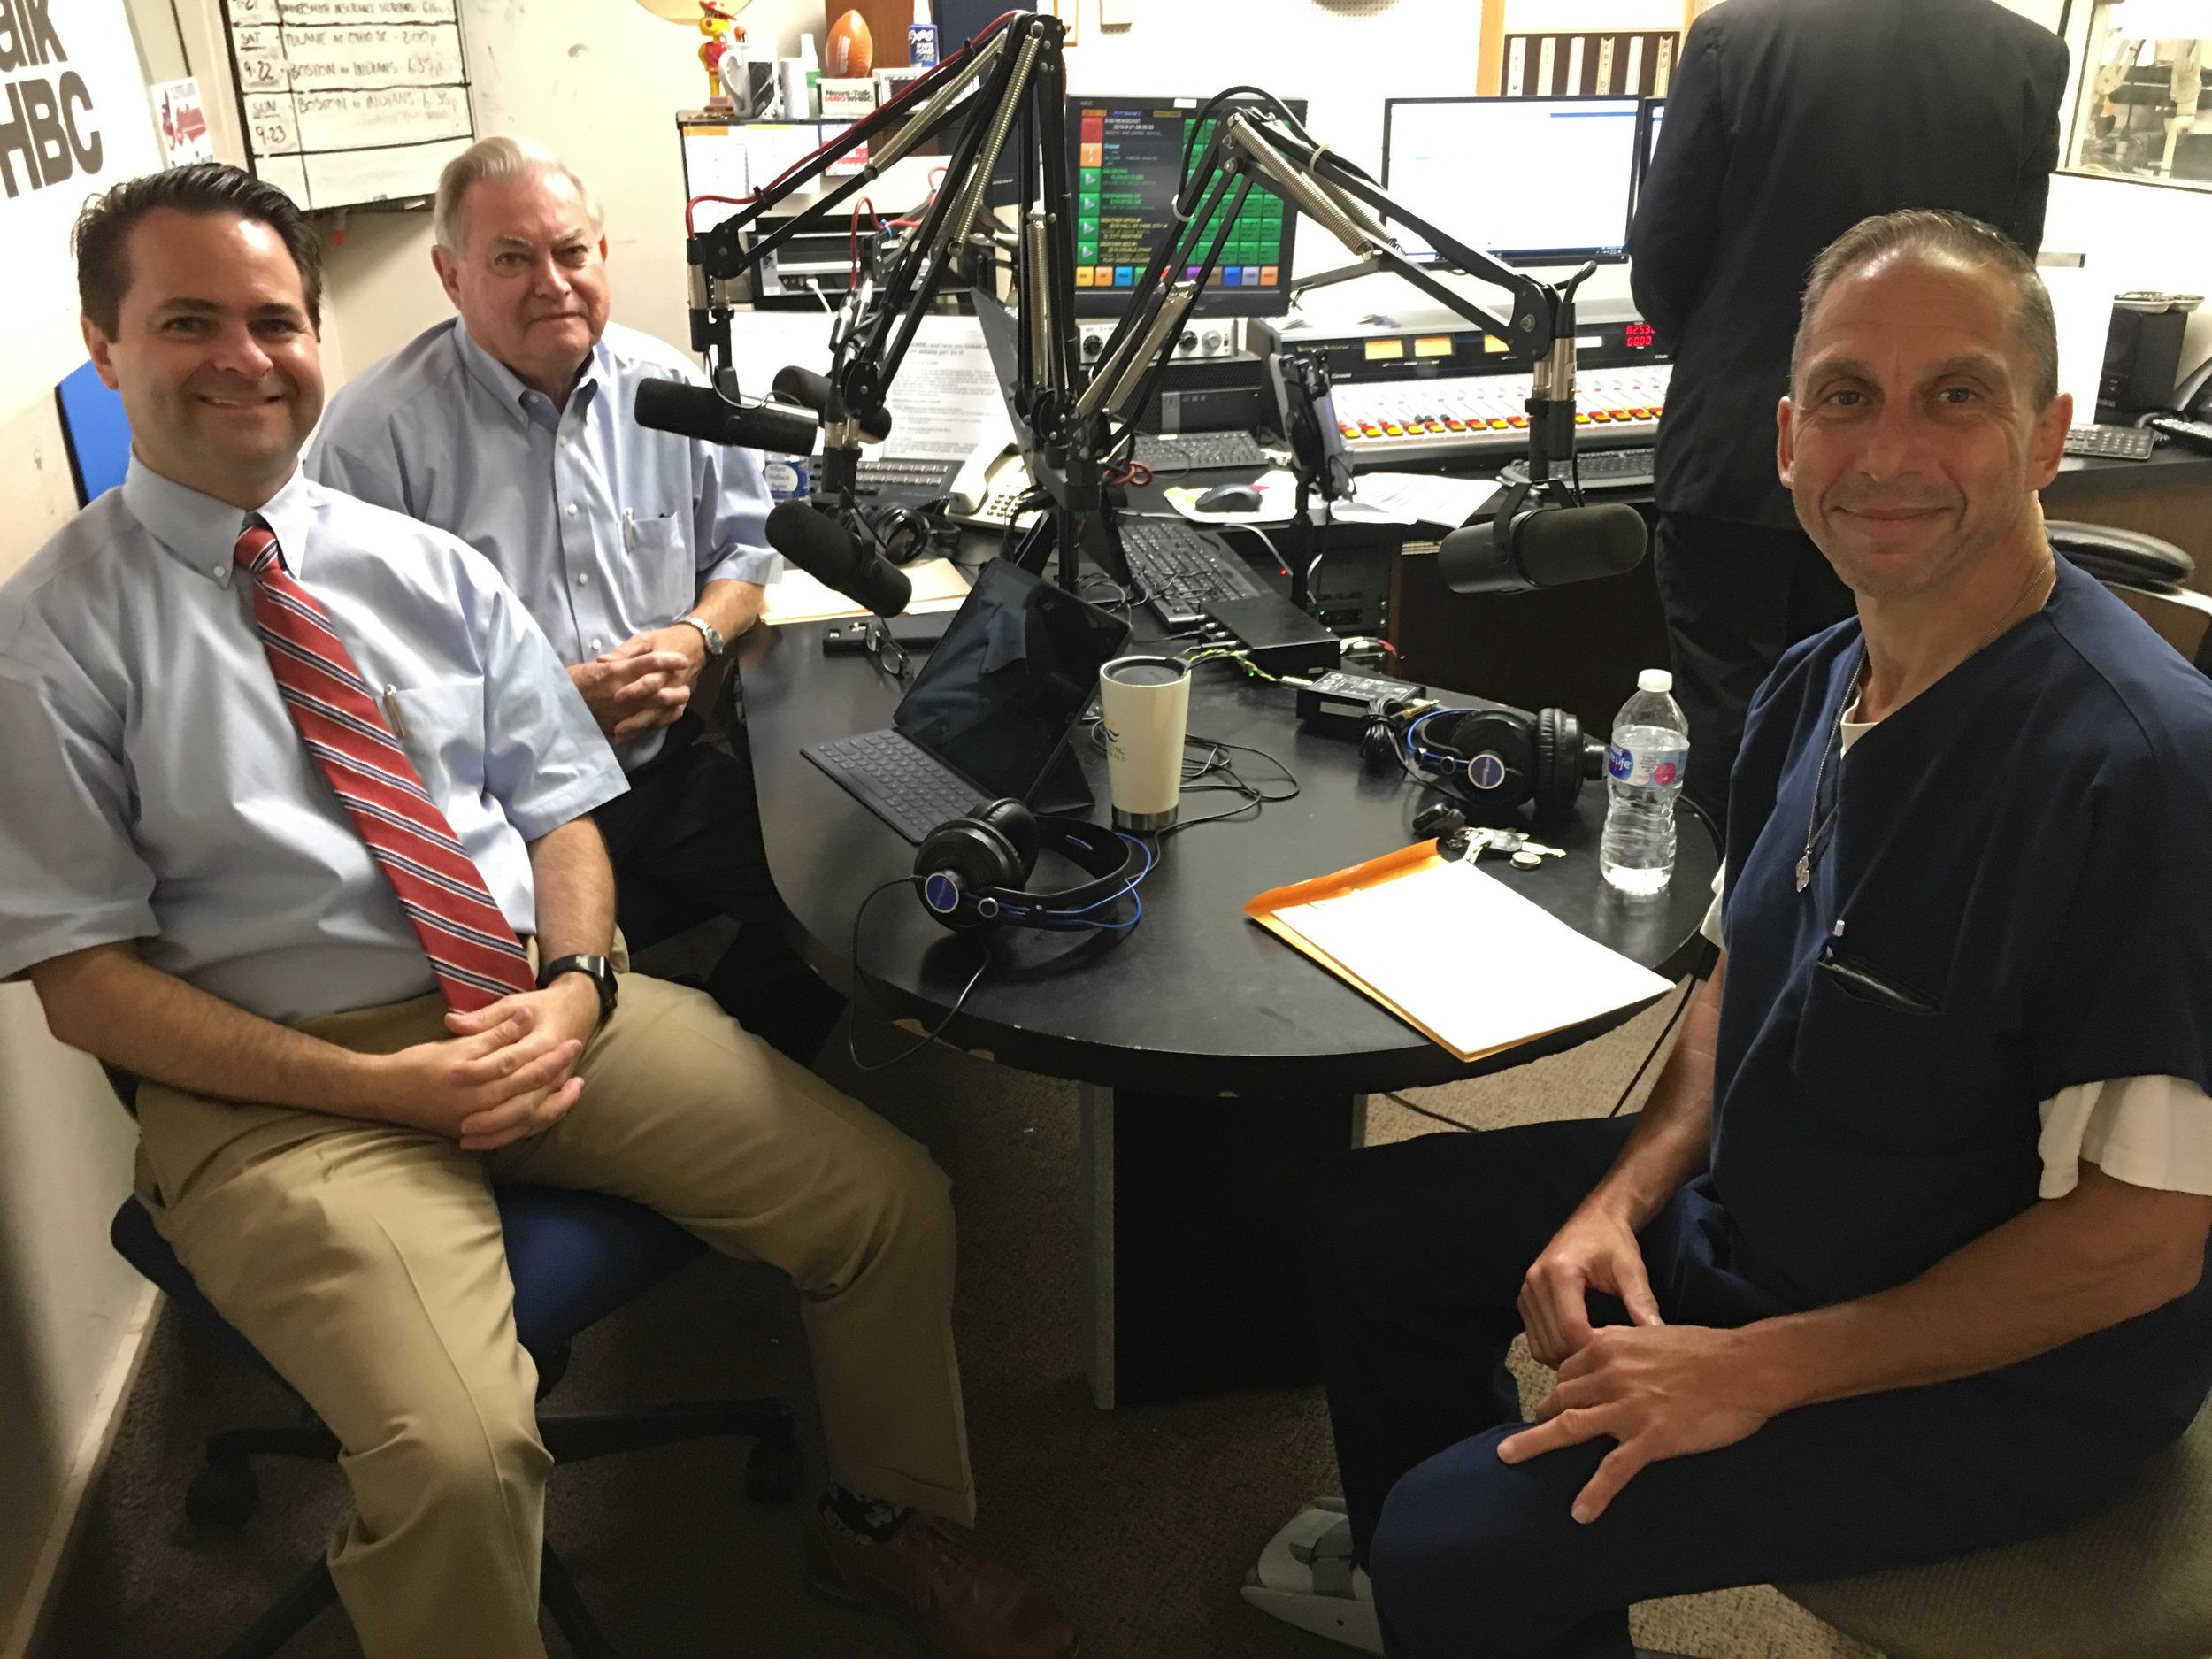 Dr. David Gutlove (right) discusses low back pain symptoms, treatment, exercise and more on Health Matters with pharmacists Brad White and Paul White.